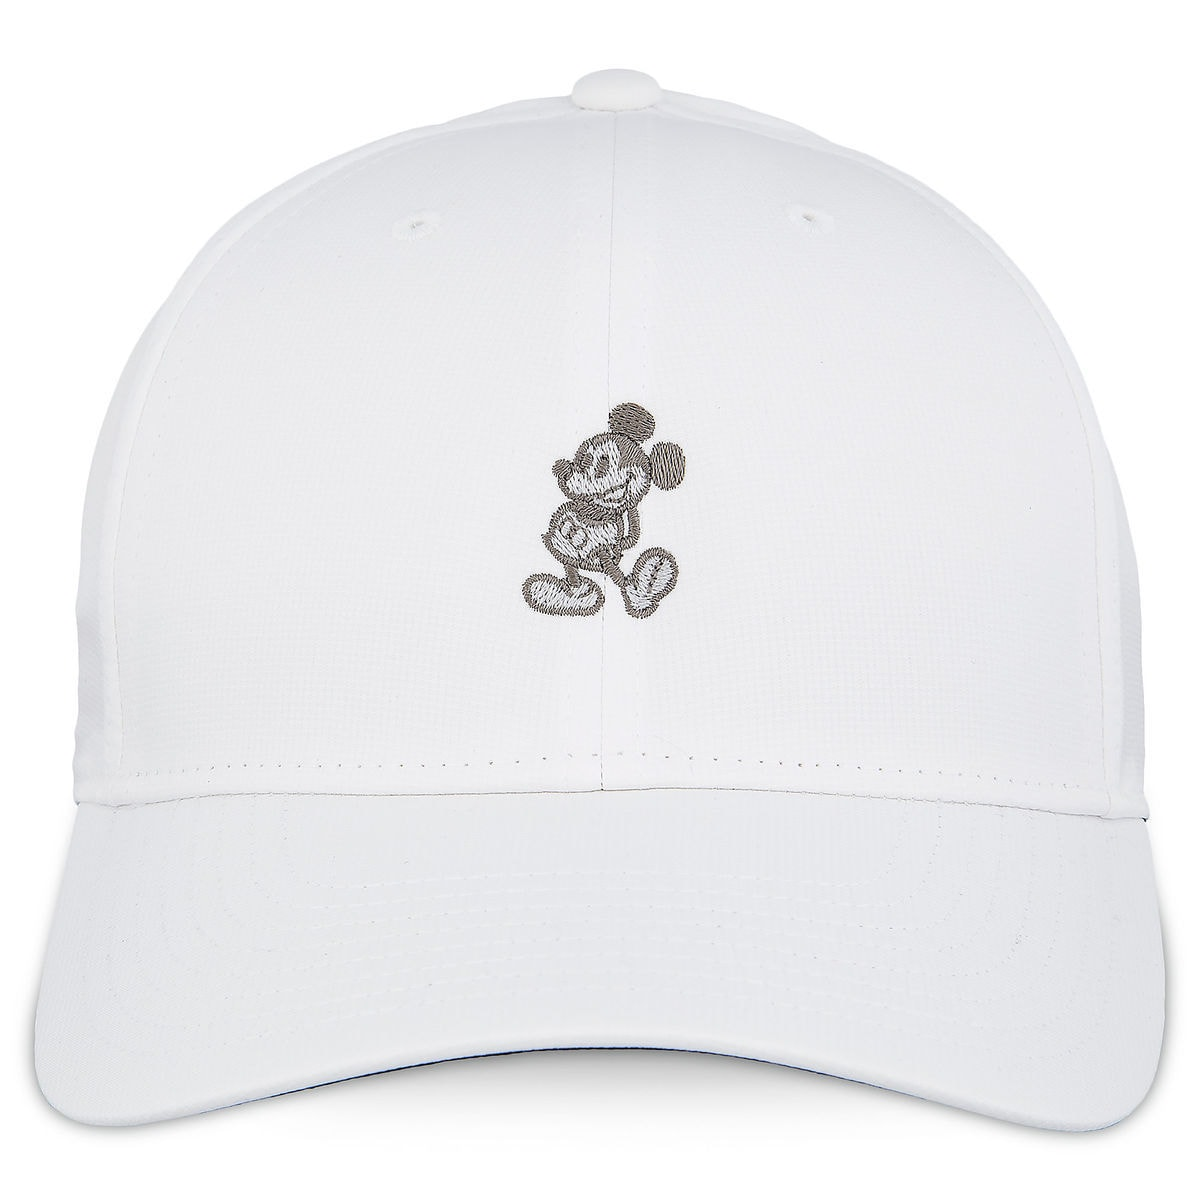 Product Image of Mickey Mouse Silhouette Baseball Hat by Nike - White   1 4c97bdea878